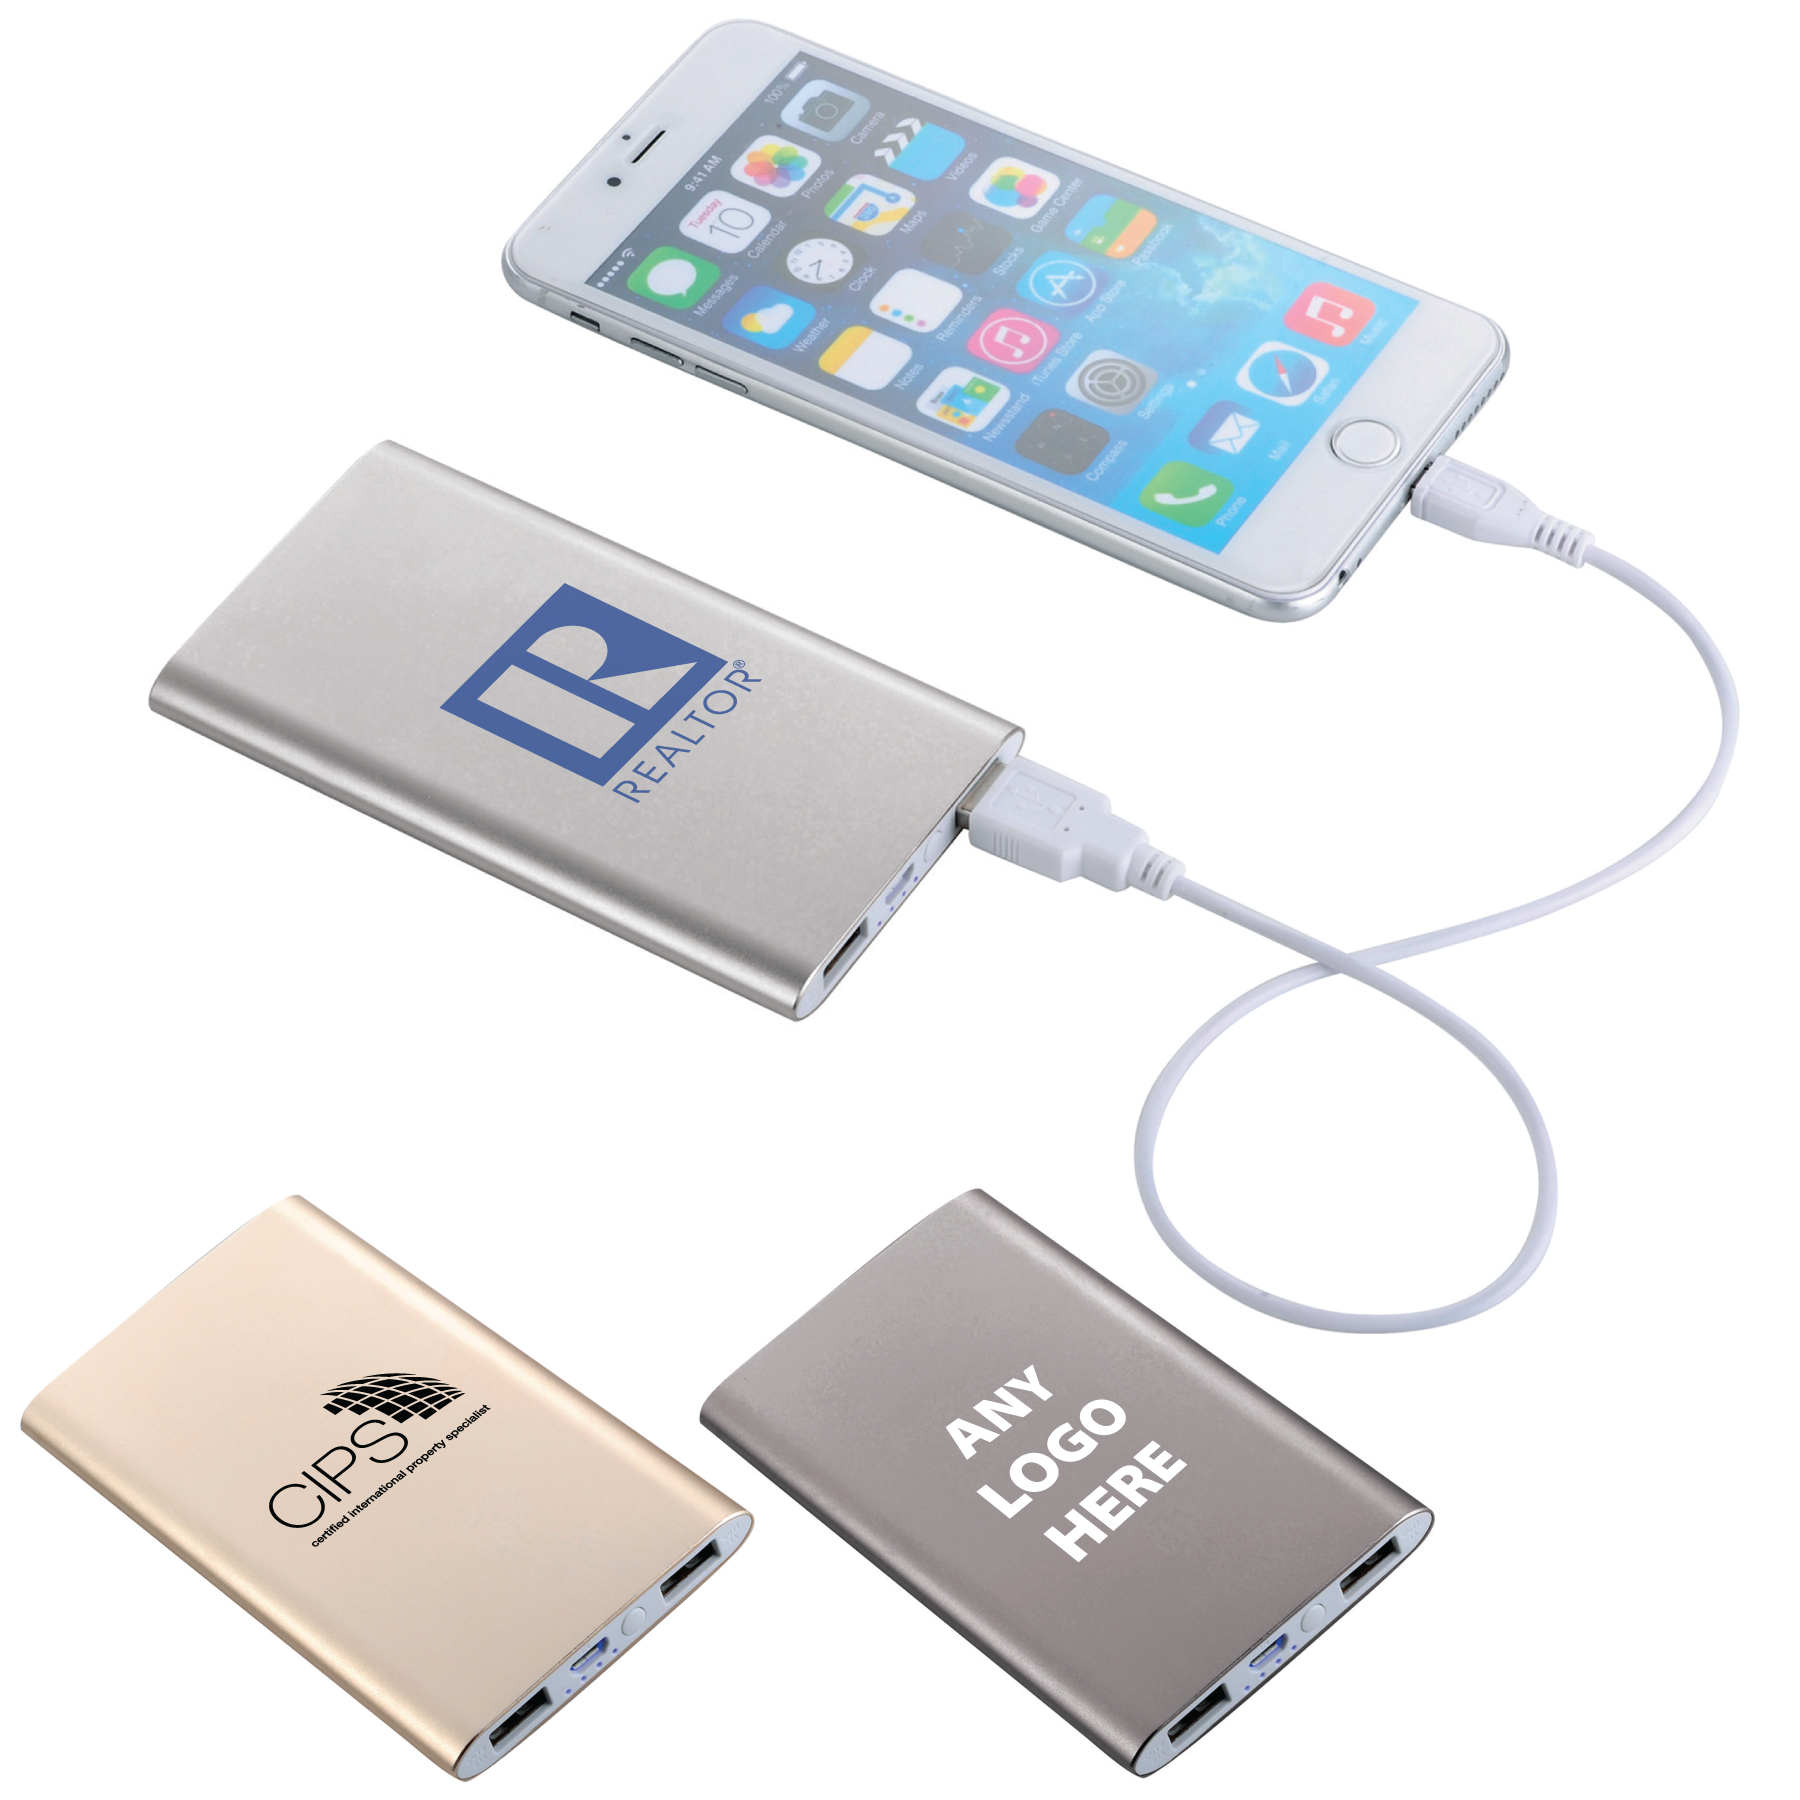 Zander Power Bank (Special Order) Chargers,Powers,Banks,Batterys,Batteries,Jumps,Charges,Phones,iphones,Cords,custom